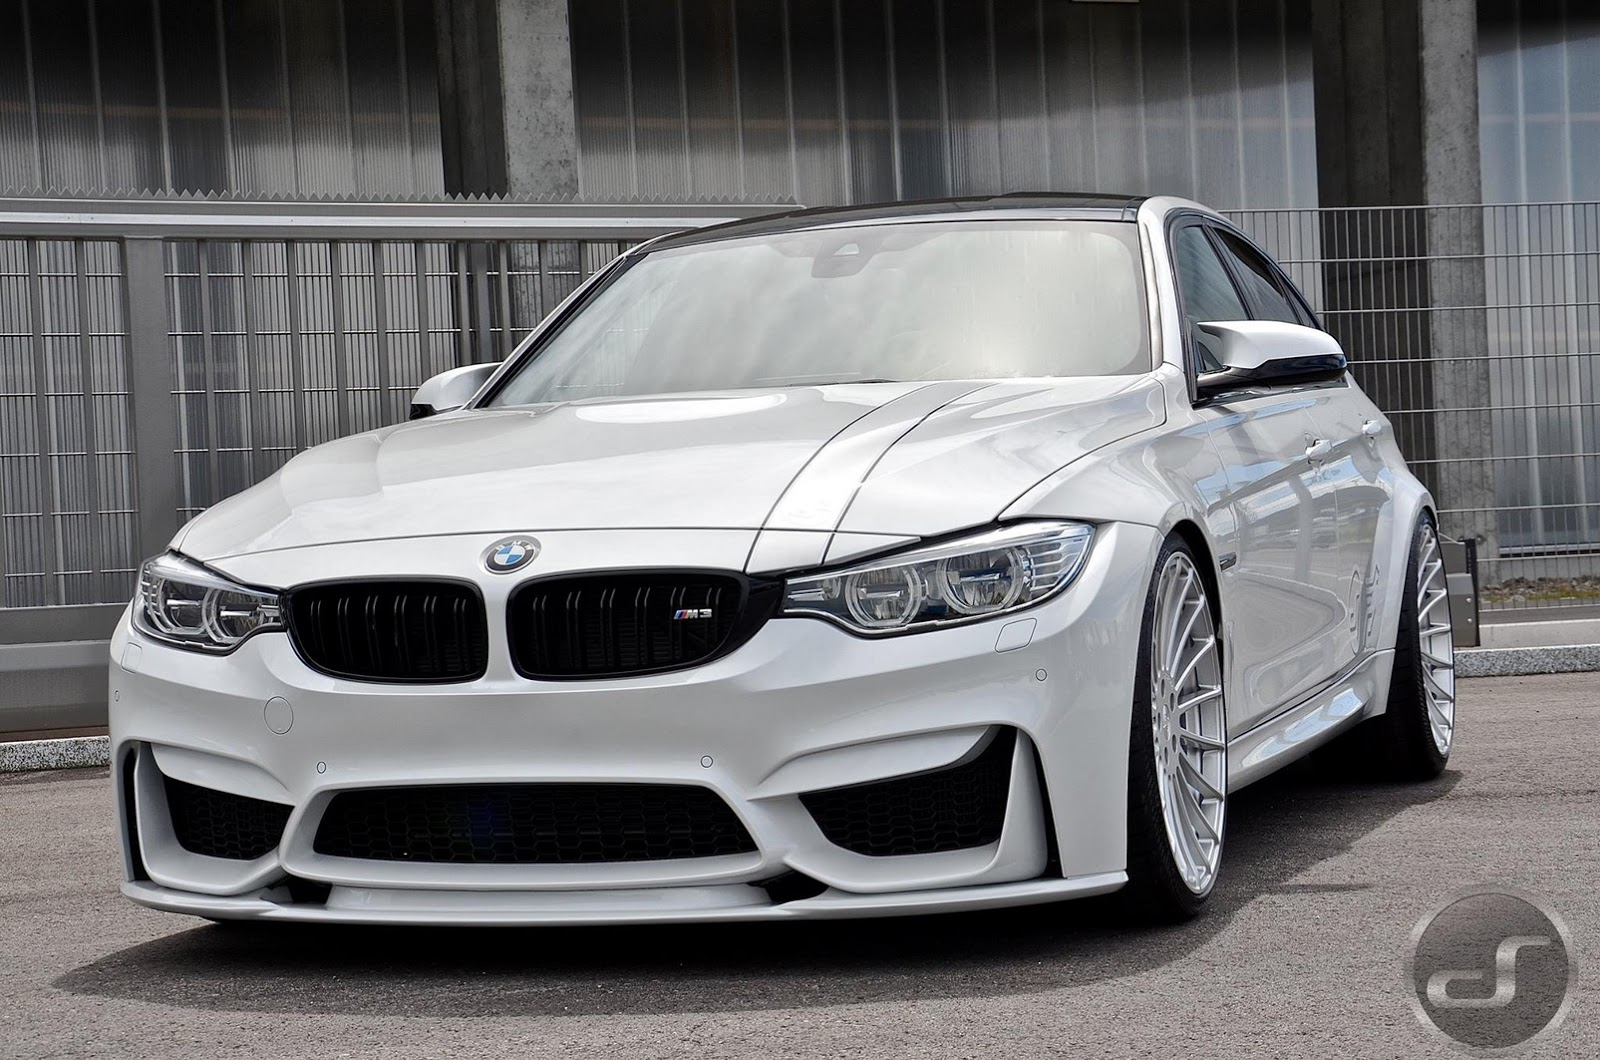 f80 bmw m3 upgrades by ds automobile hamann bmw car tuning. Black Bedroom Furniture Sets. Home Design Ideas